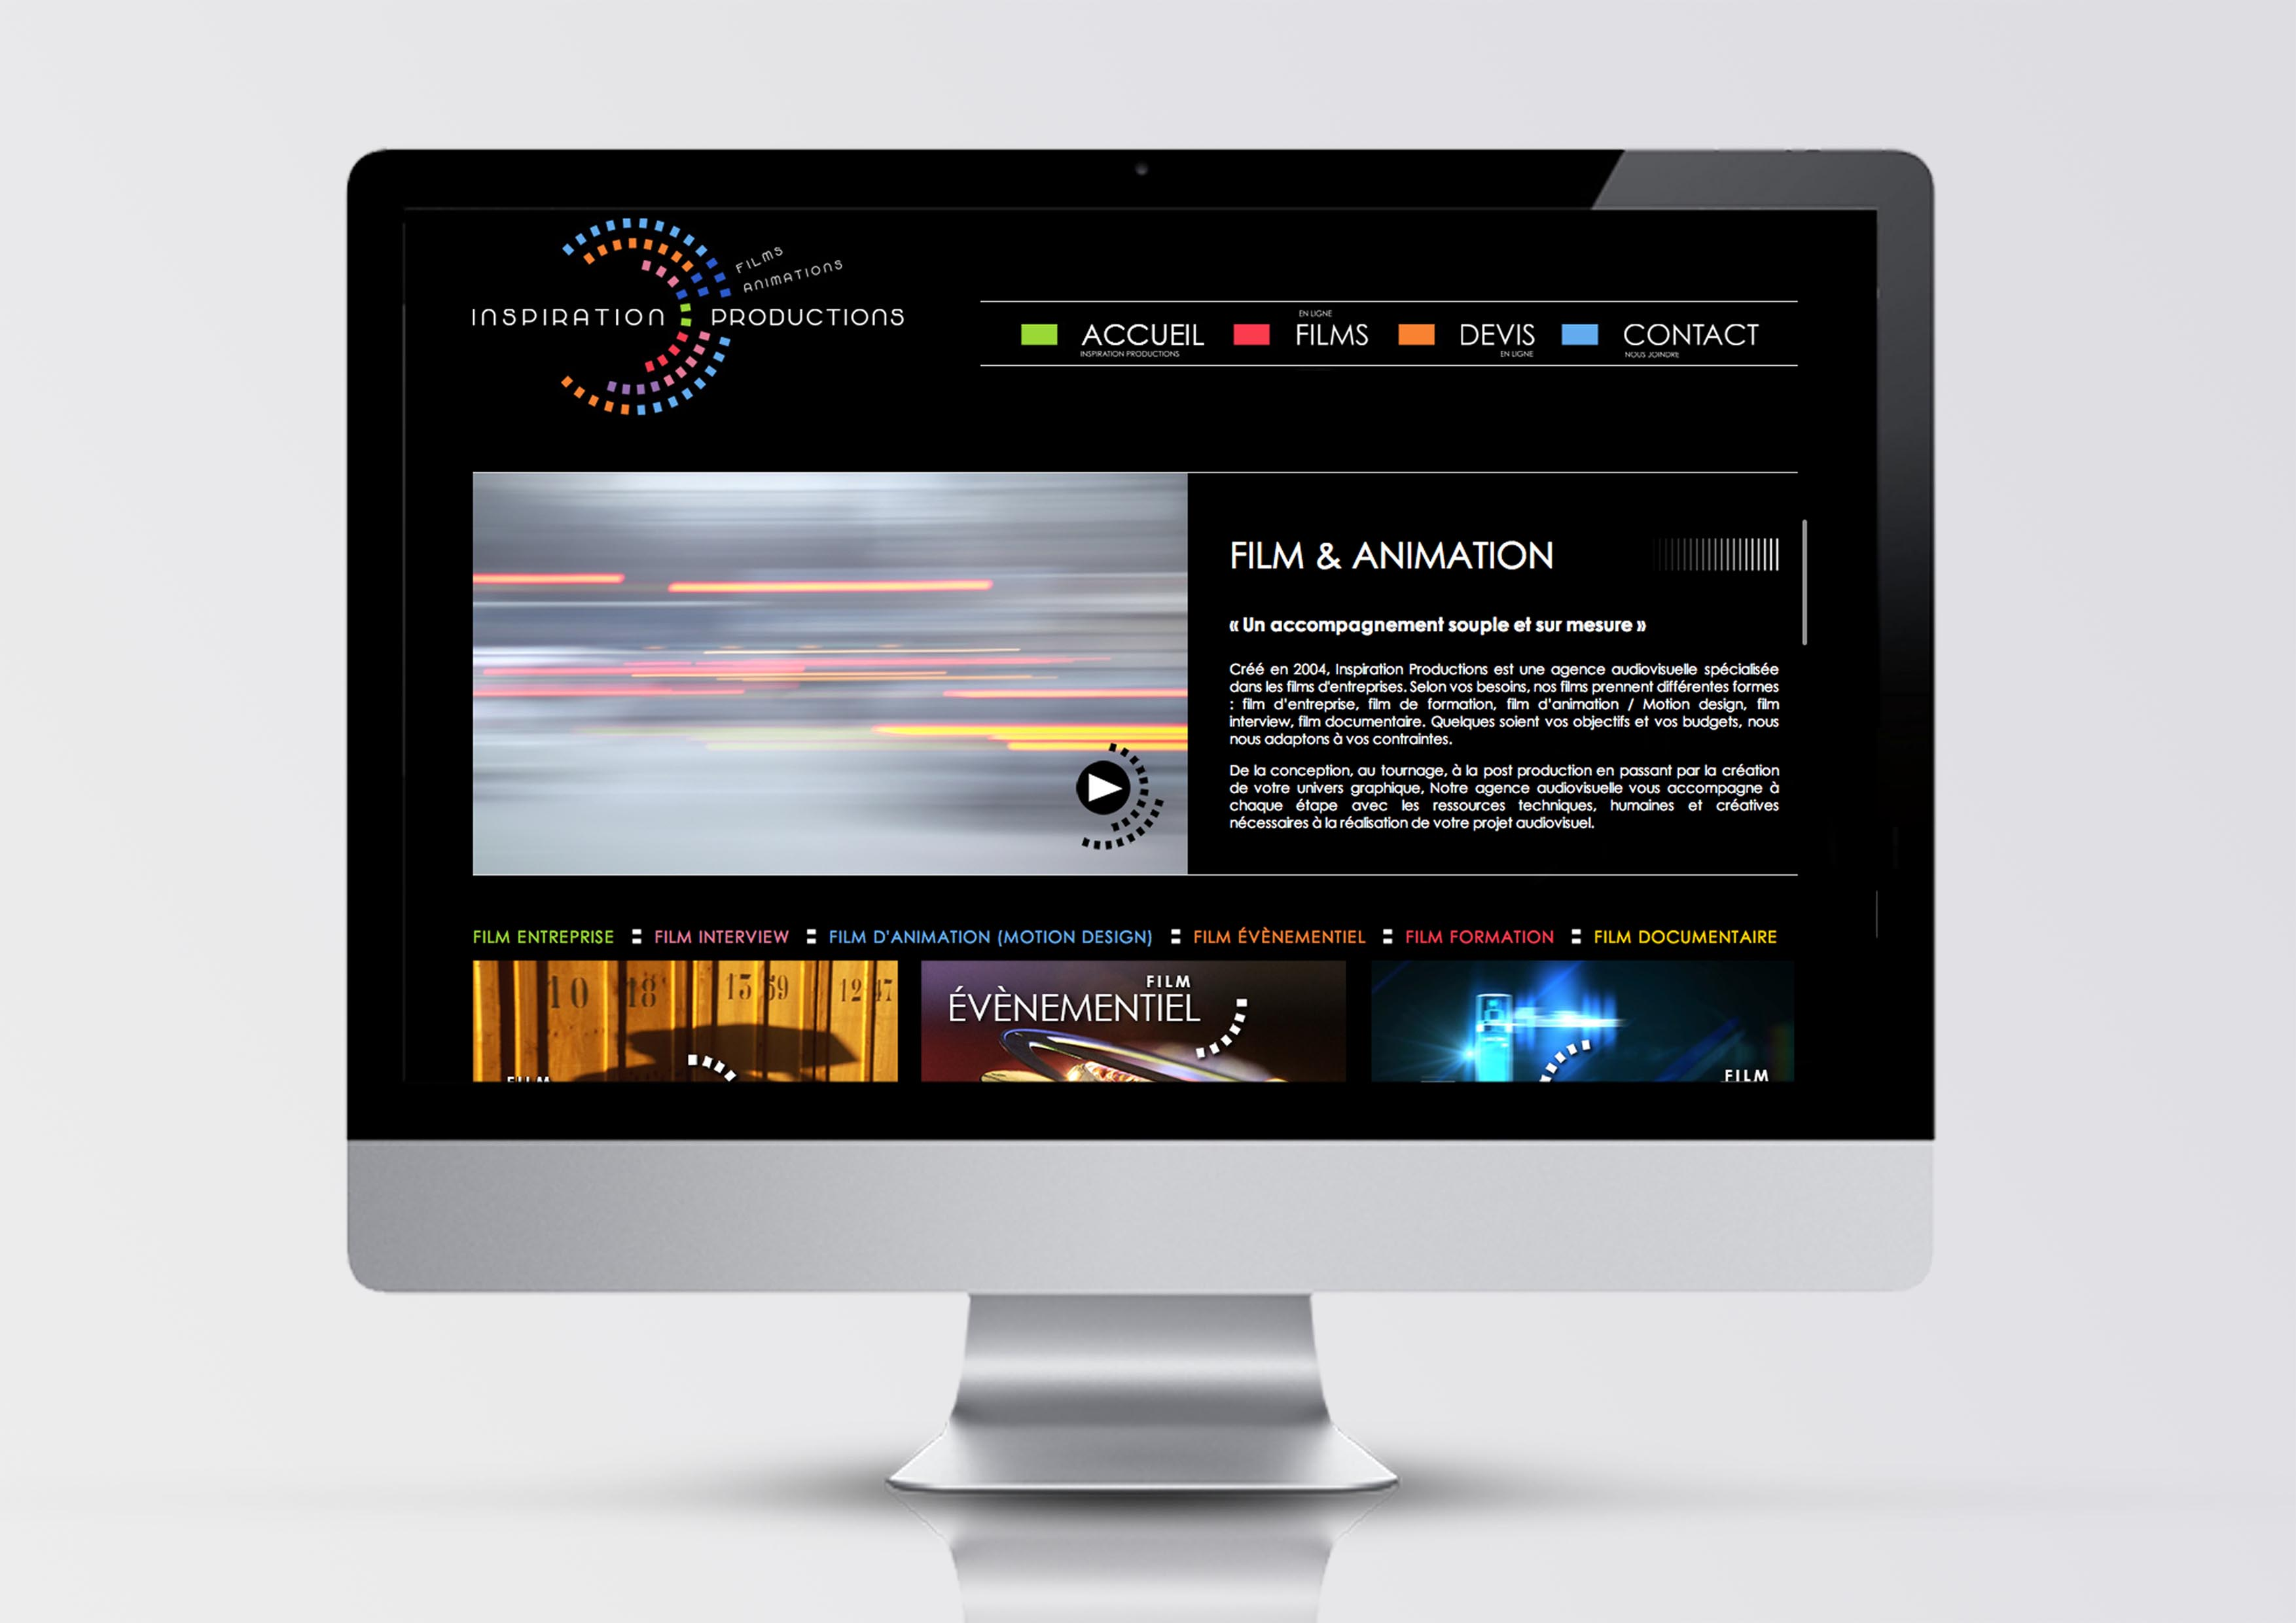 Web design Inspiration Productions